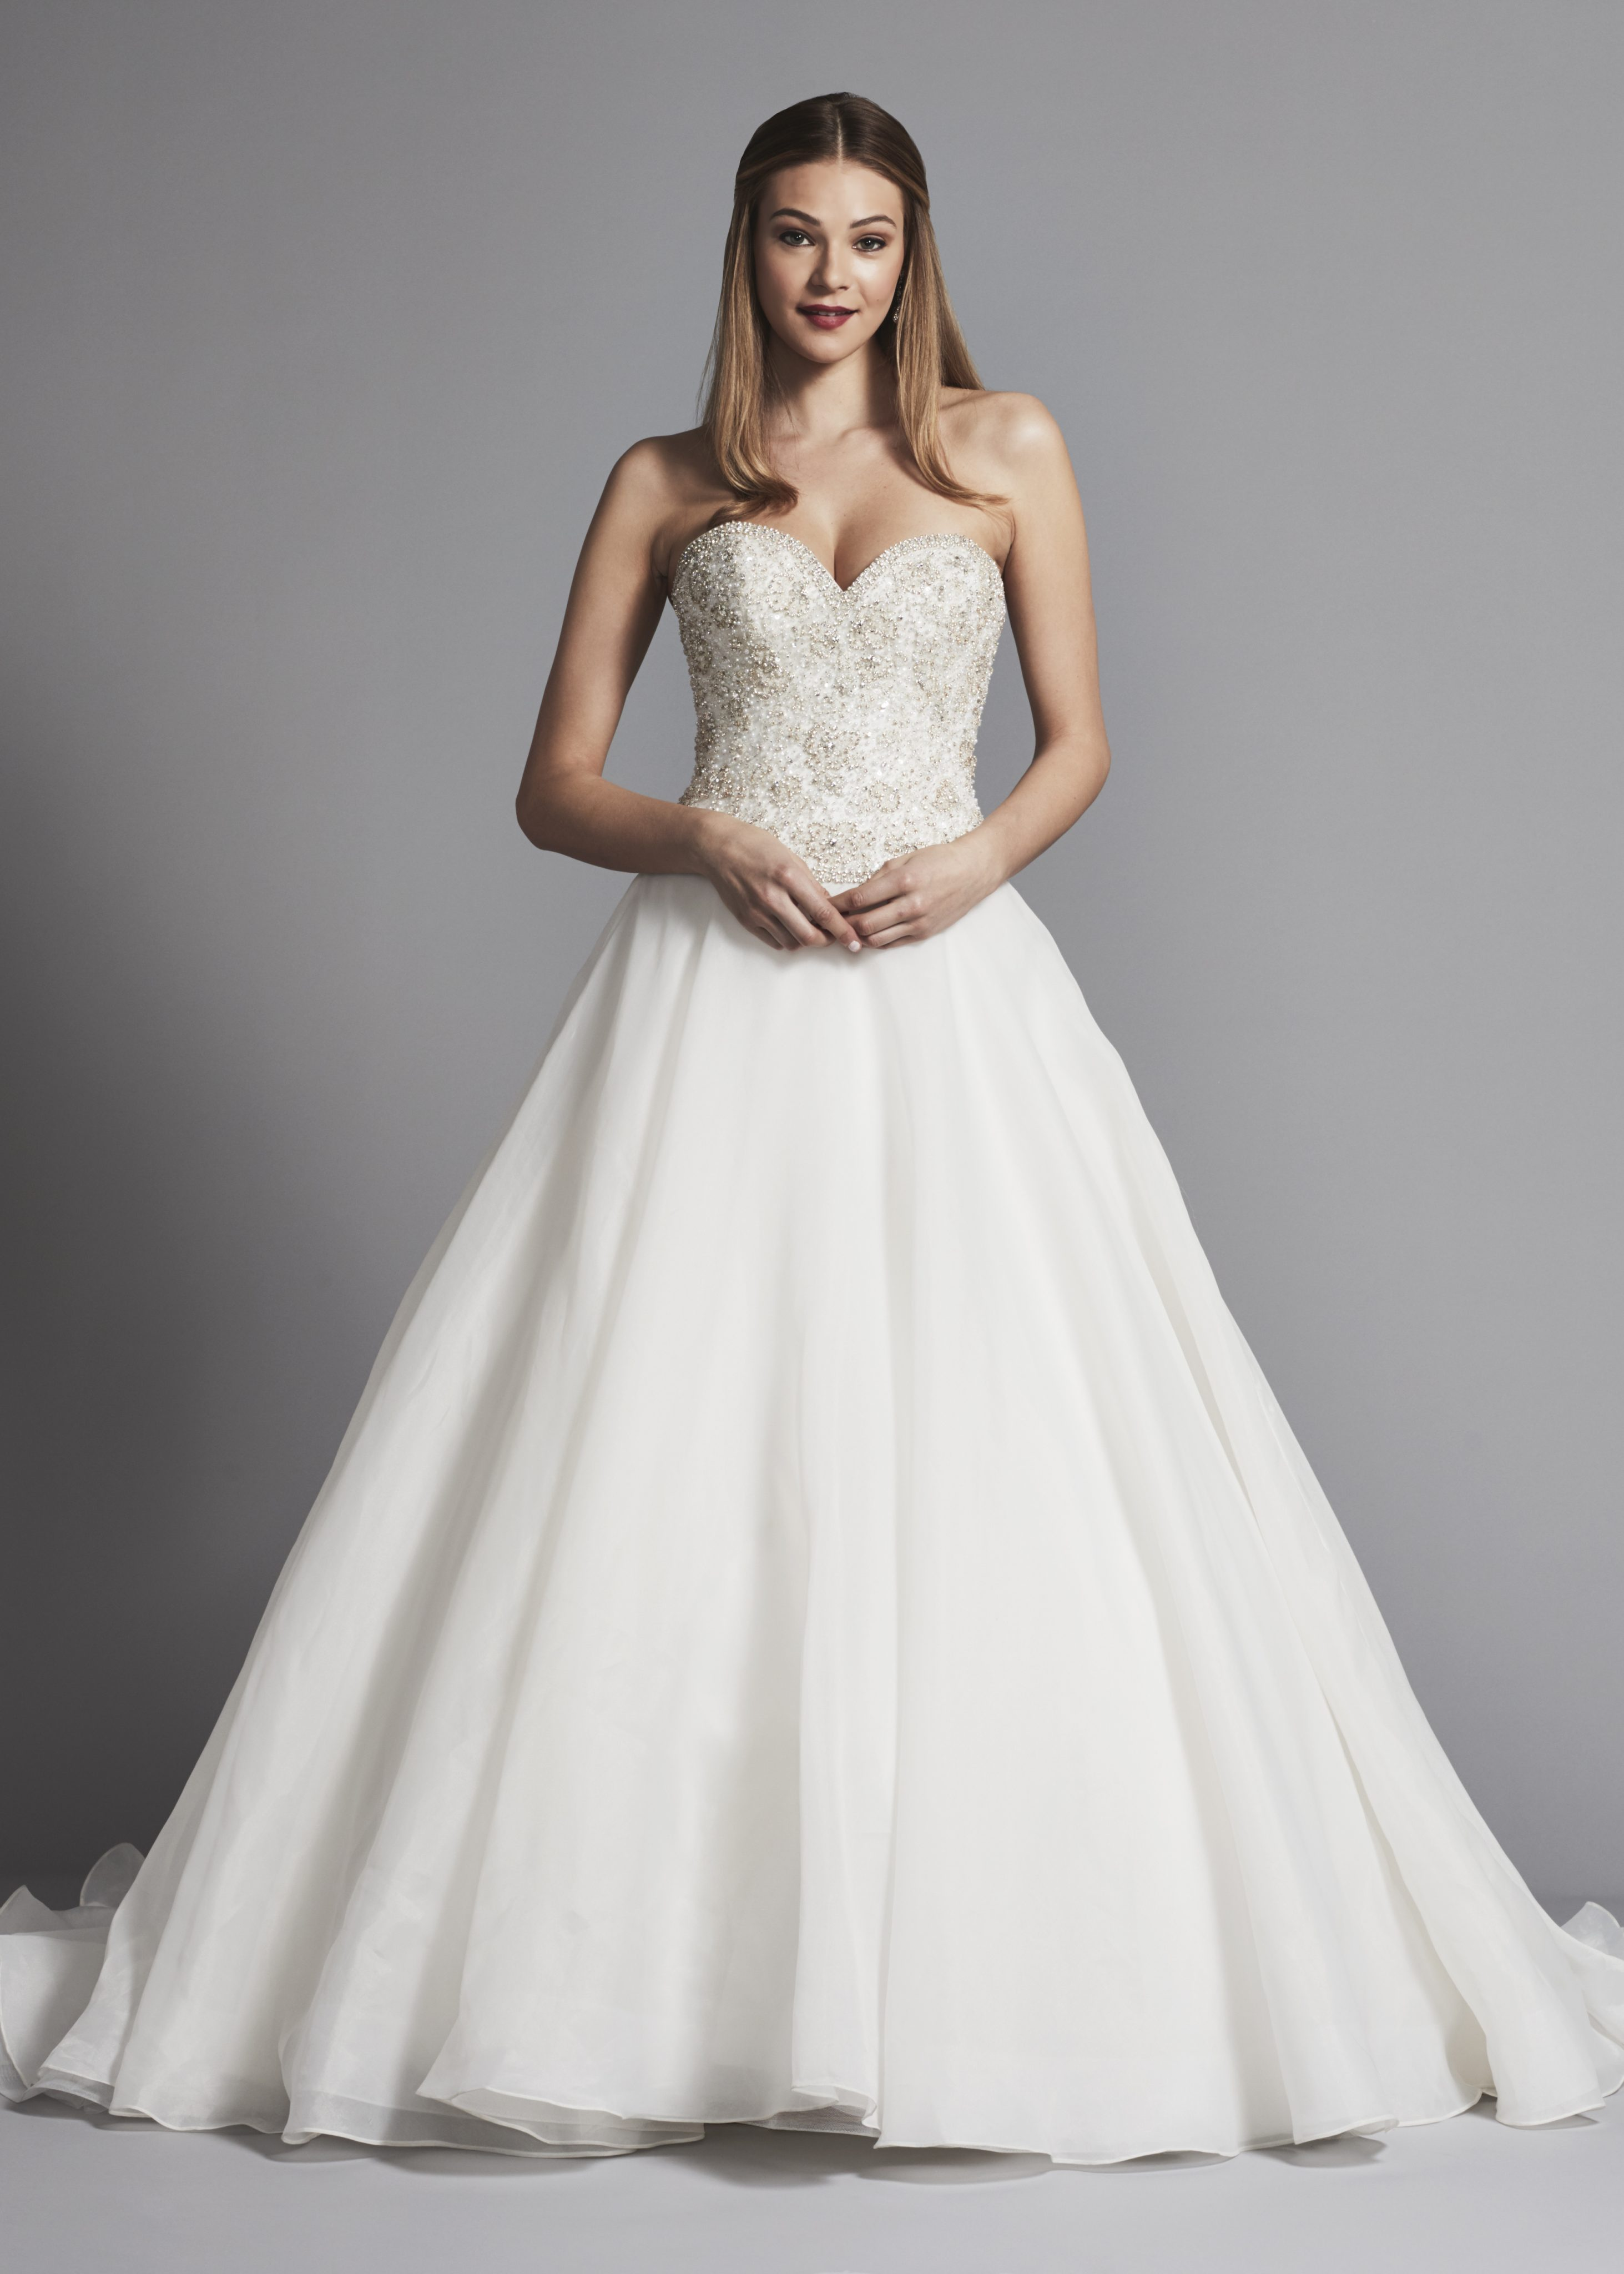 Classic Strapless Sweetheart Ball Gown Wedding Dress With Beading ...